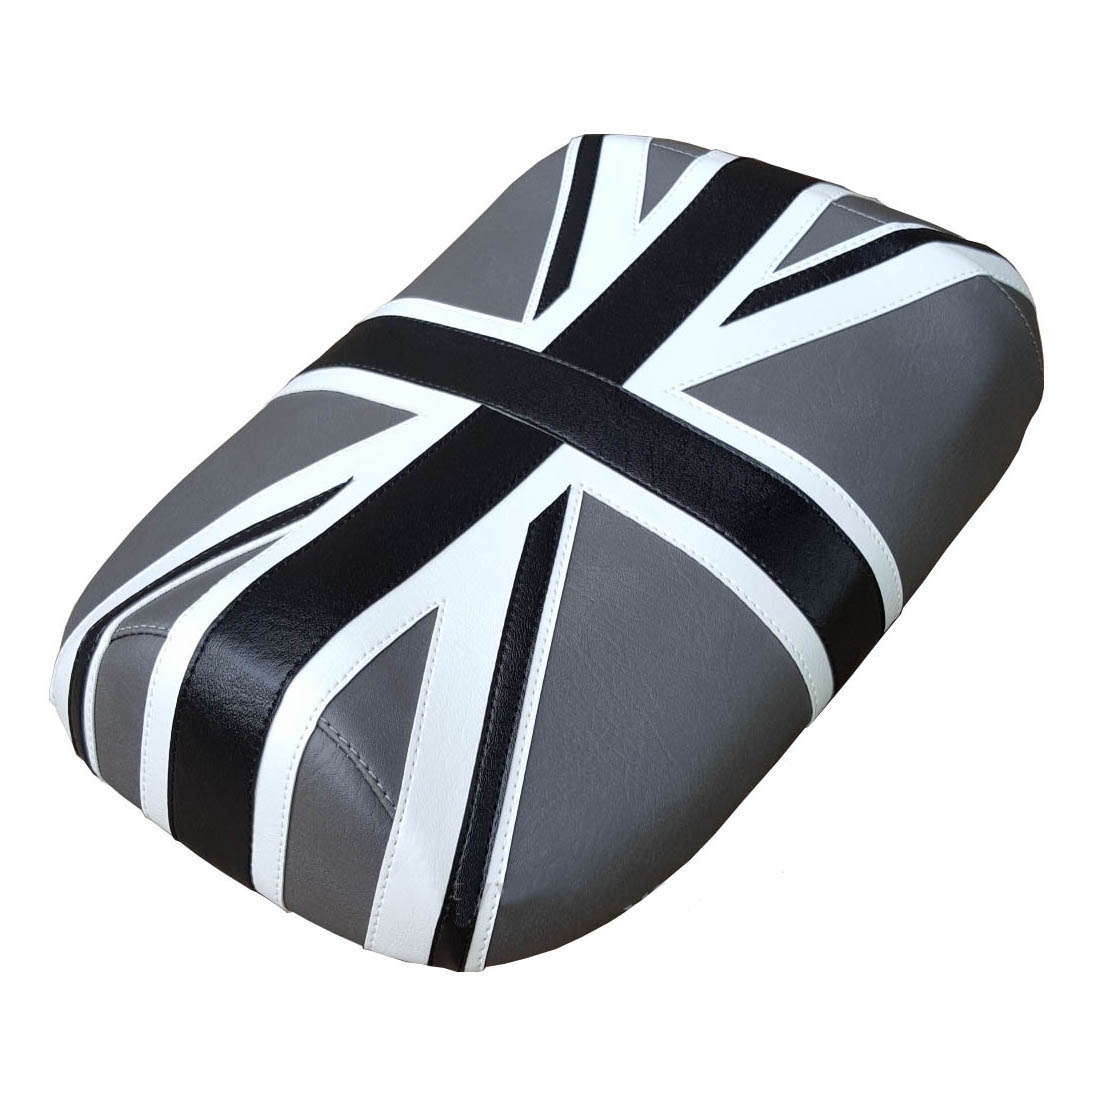 Ruckus Flags and Patterned Seat Covers